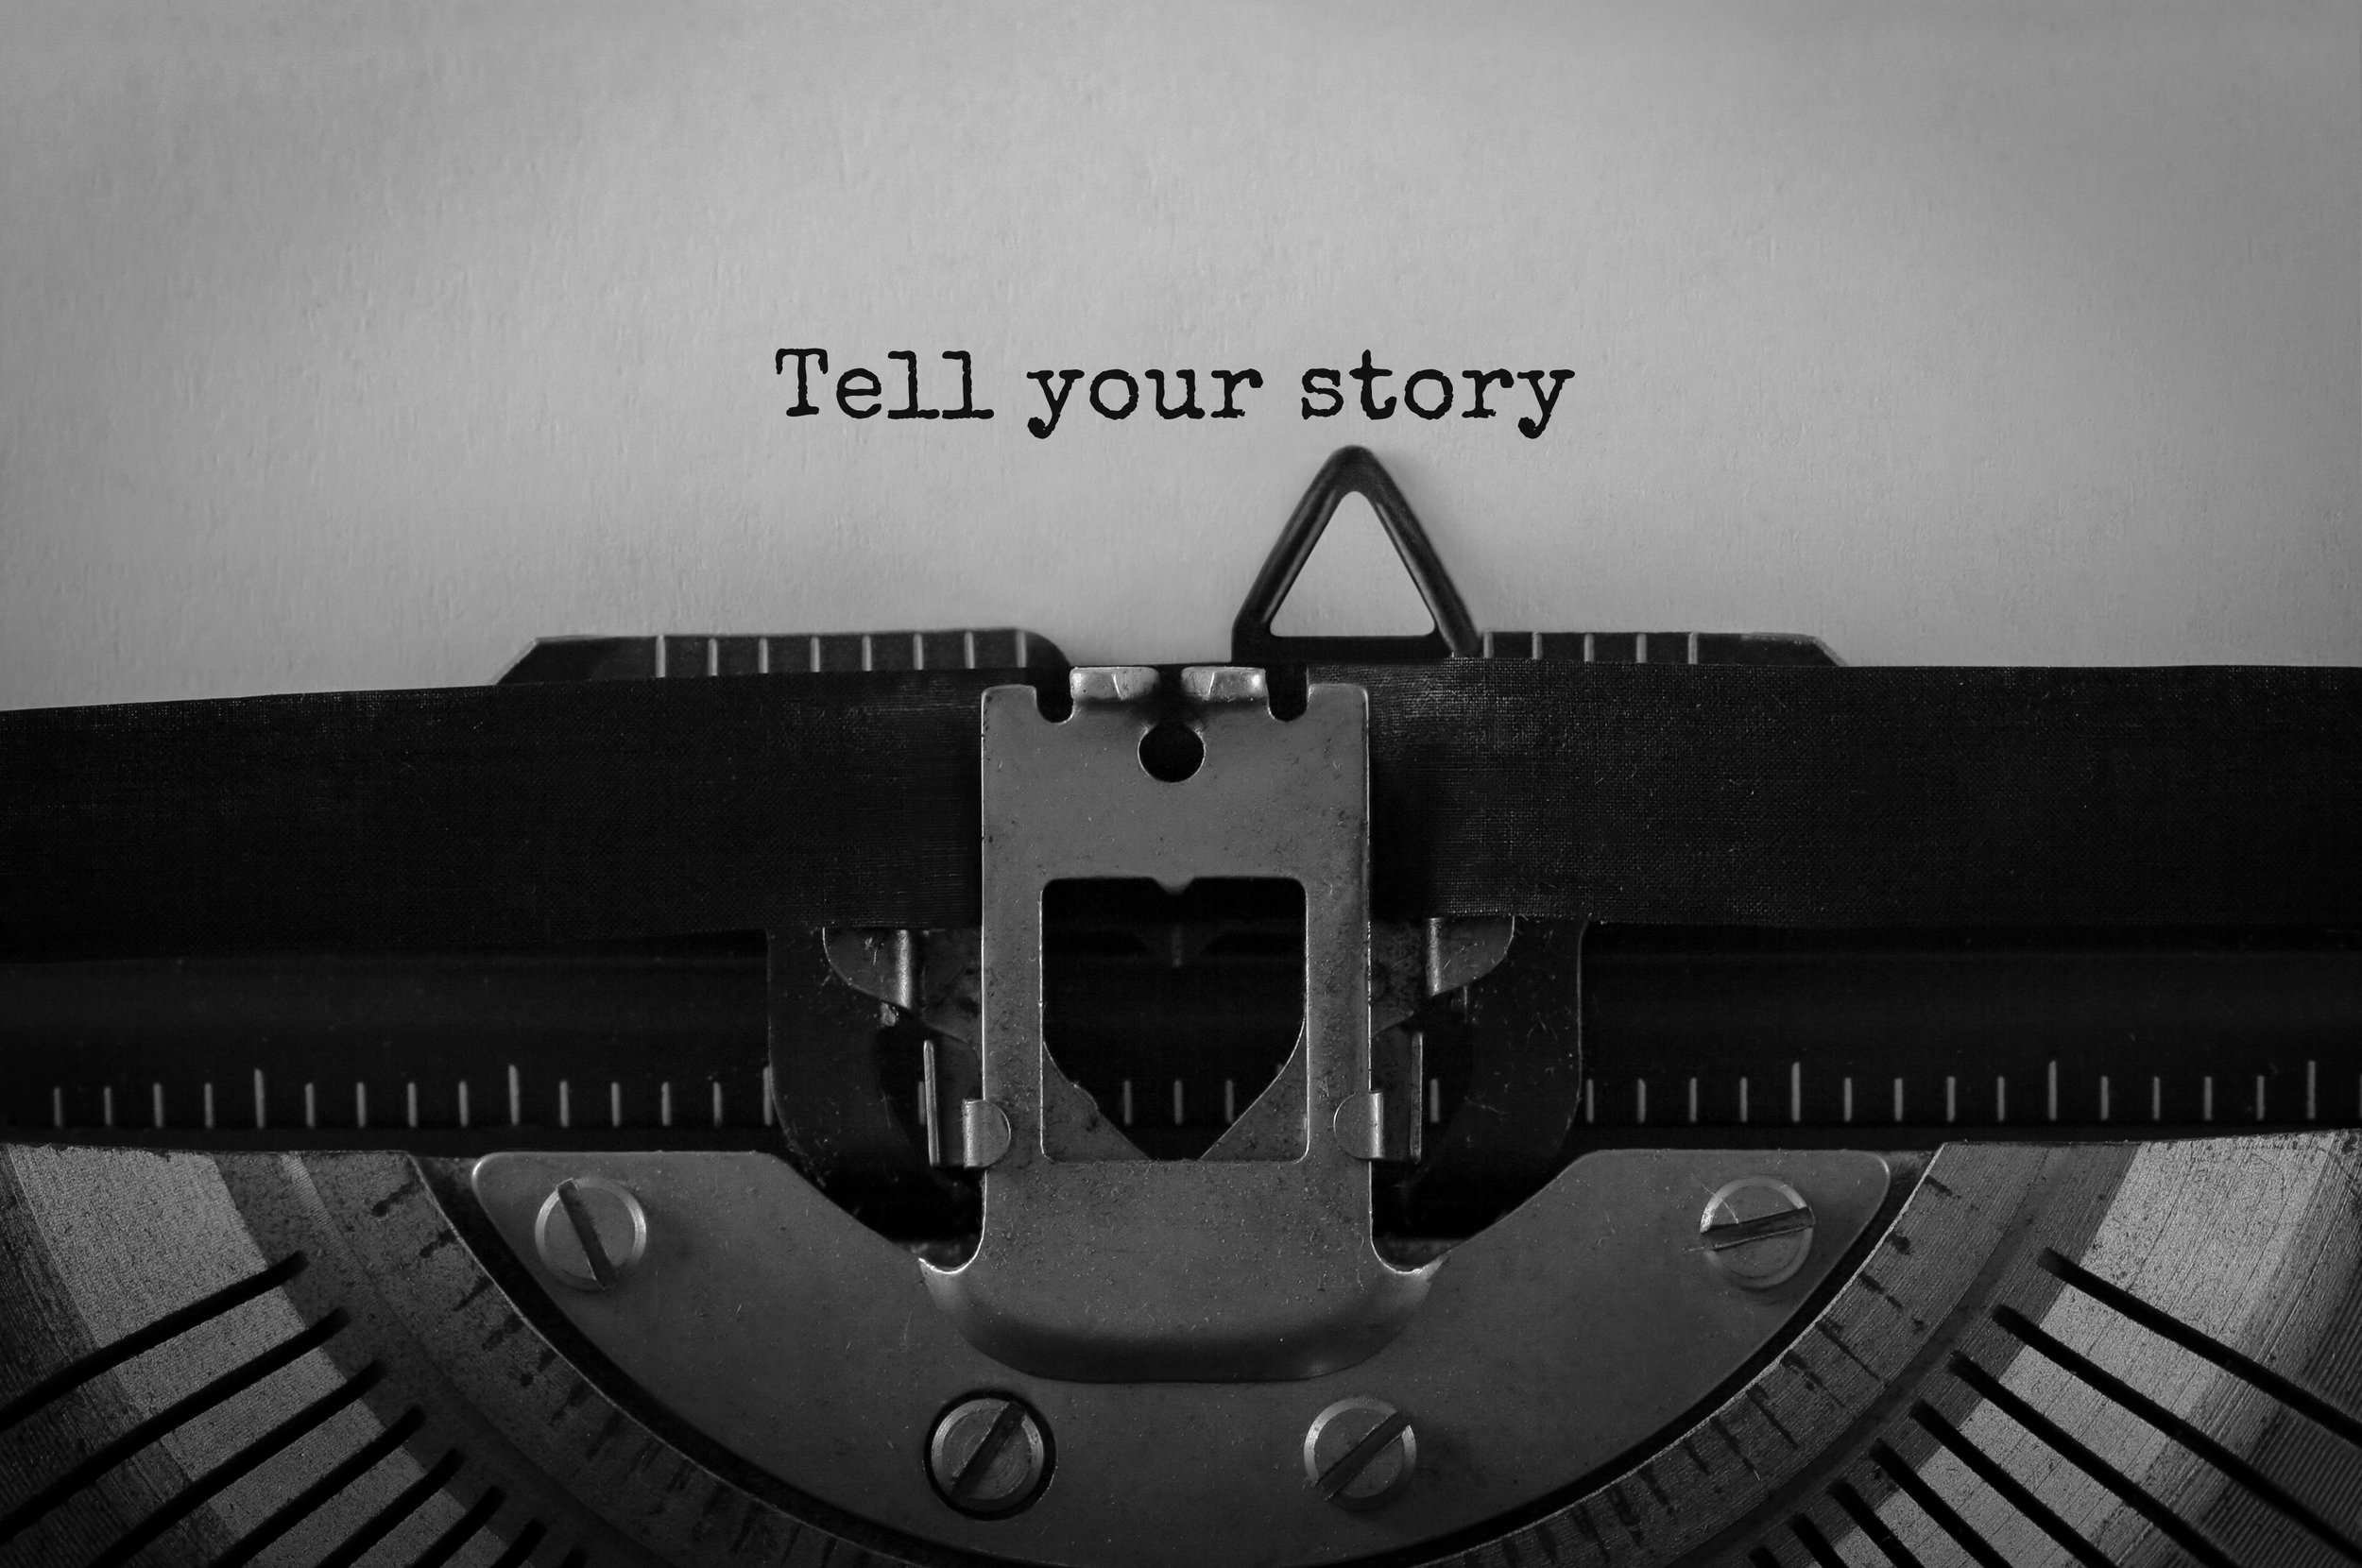 Your story must resonate with your donors -